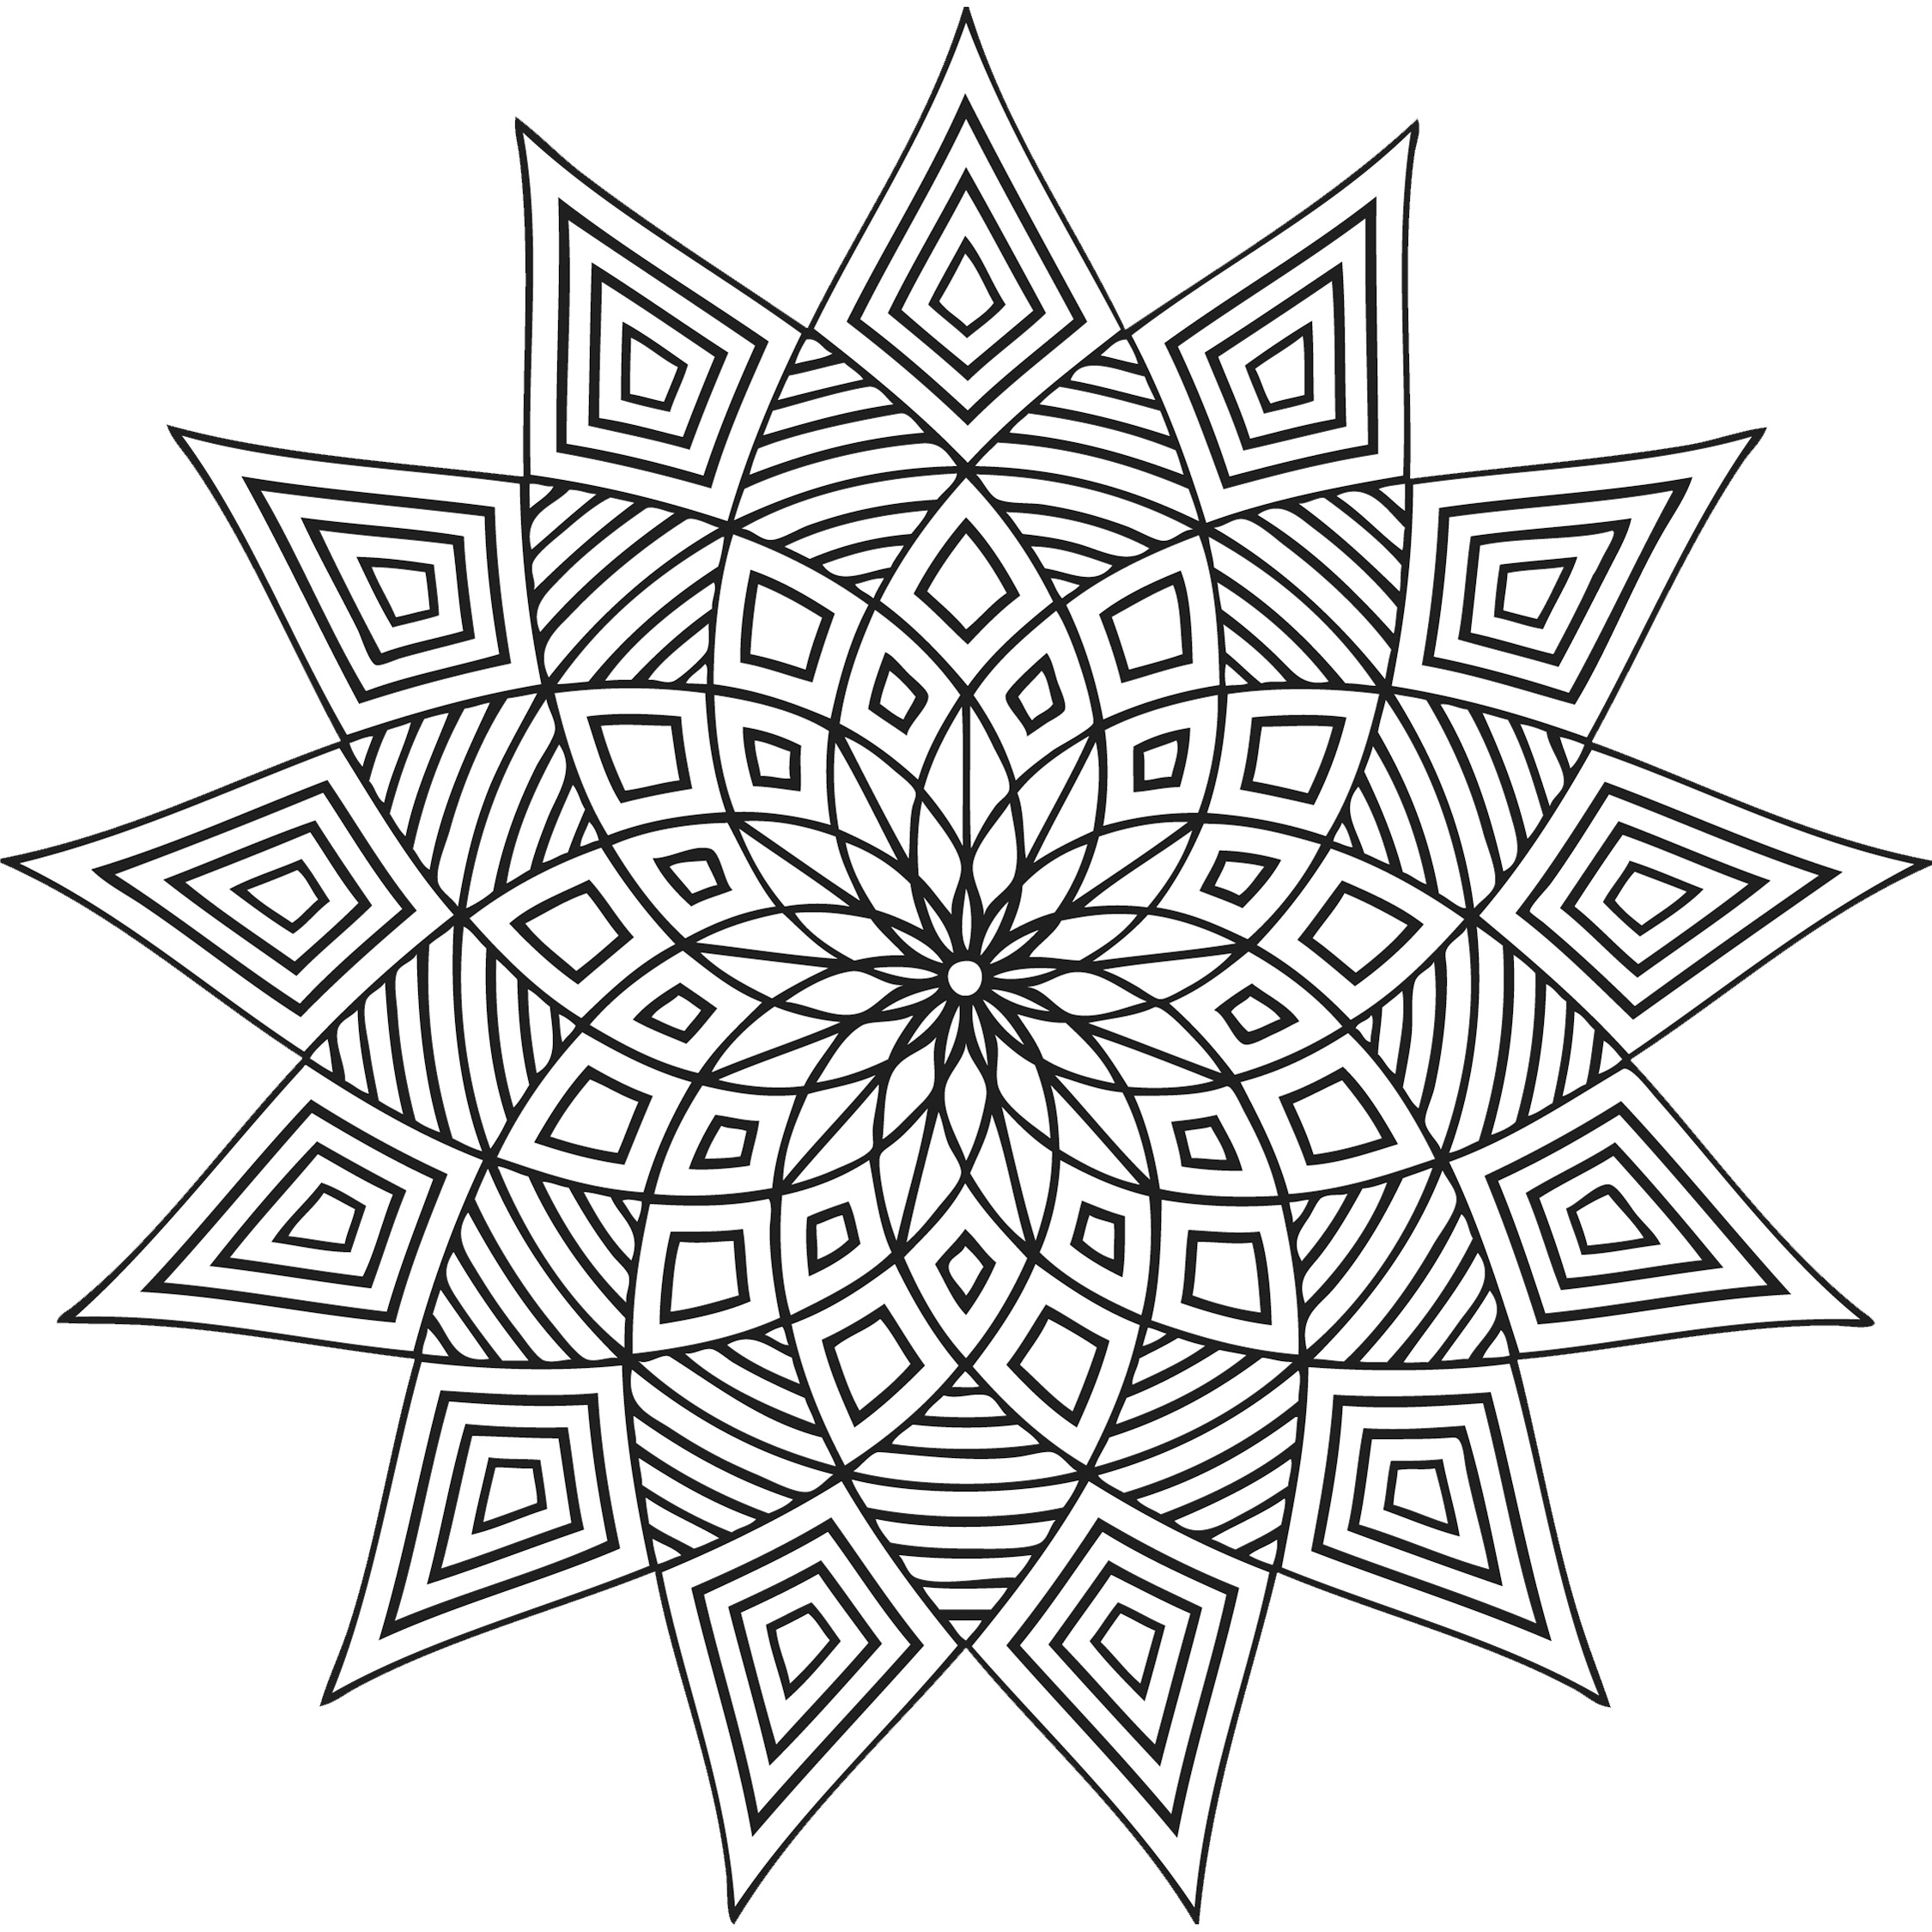 2250x2250 New Design Coloring Pages In Coloring Pages For Kids Online